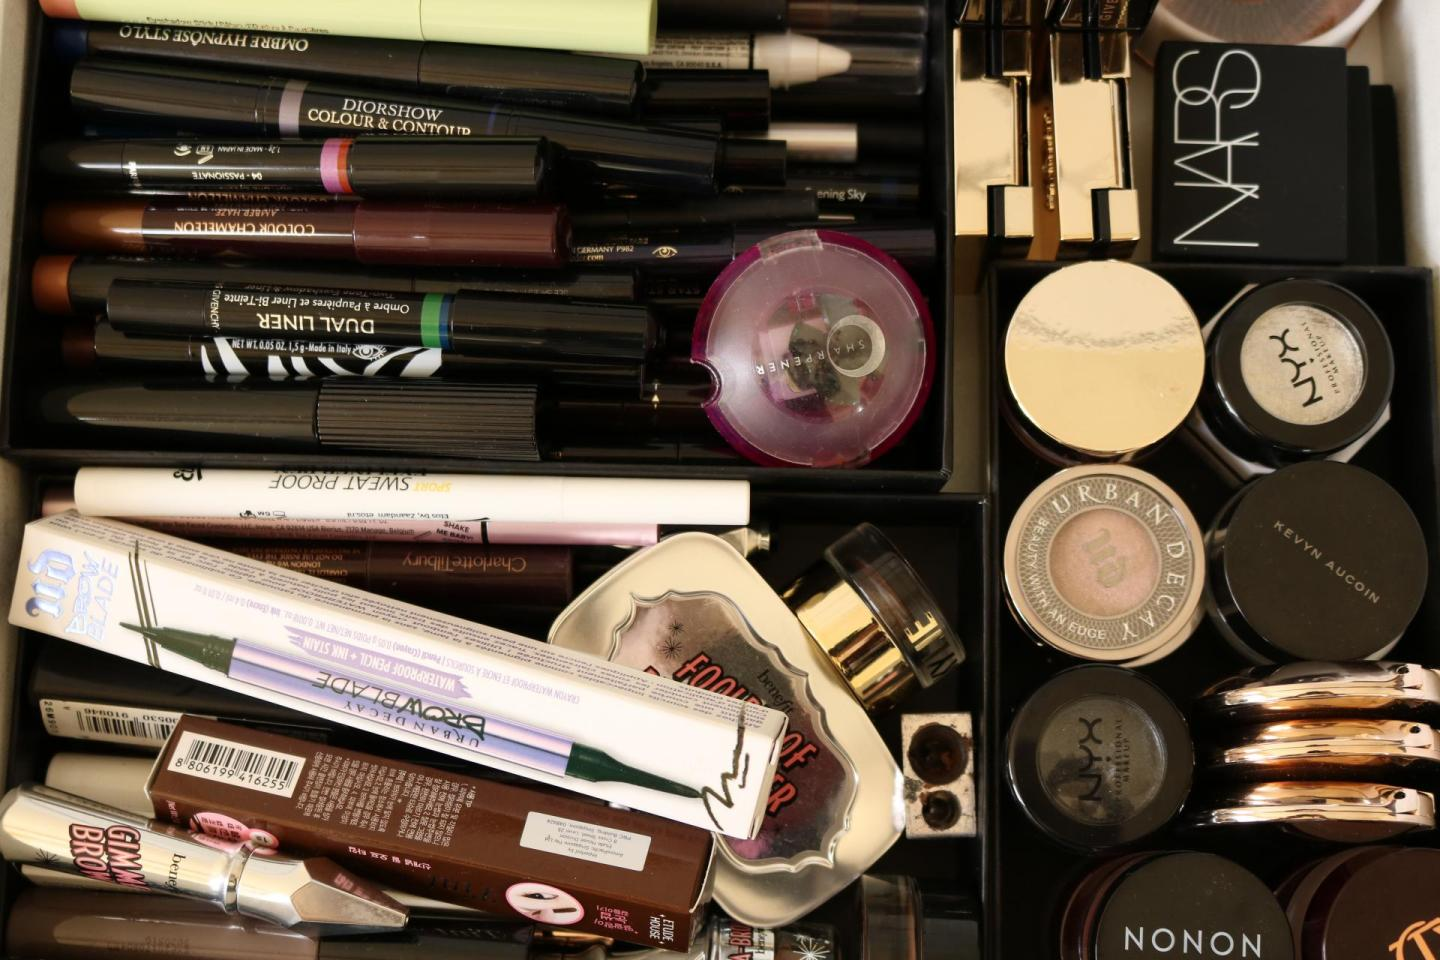 Cleaning up the makeup like Marie Kondo